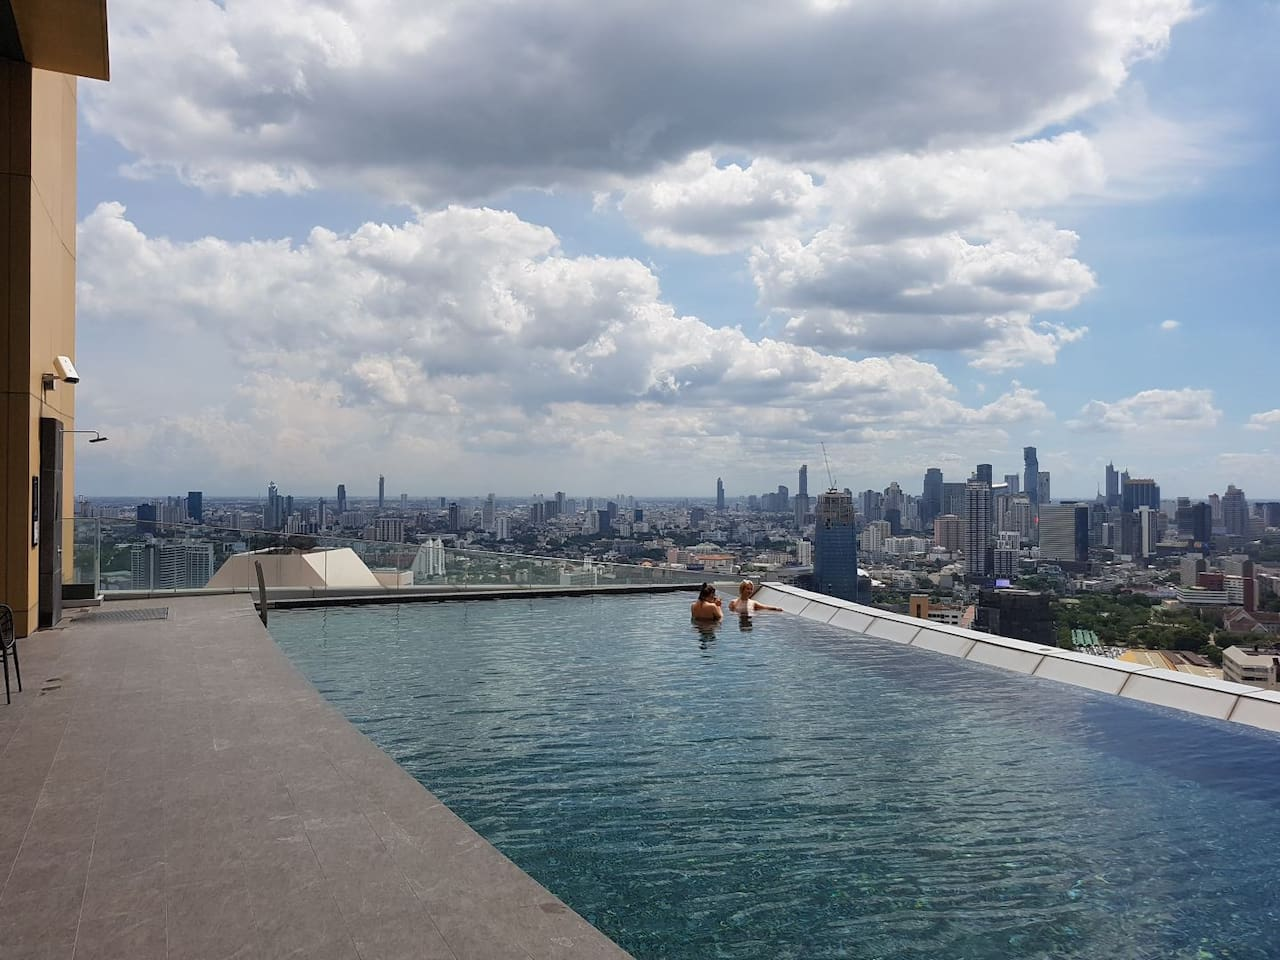 Free Best Infinity pool, sky edge pool, on 41st Floor with the gorgeous Bangkok views. The pool is specially built and designed as its Pool Extends From Edge Of Building. /免费的Best Infinity游泳池,天空边缘游泳池,位于41楼,享有曼谷美景。 游泳池是专门建造和设计的,其泳池延伸至建筑边缘。